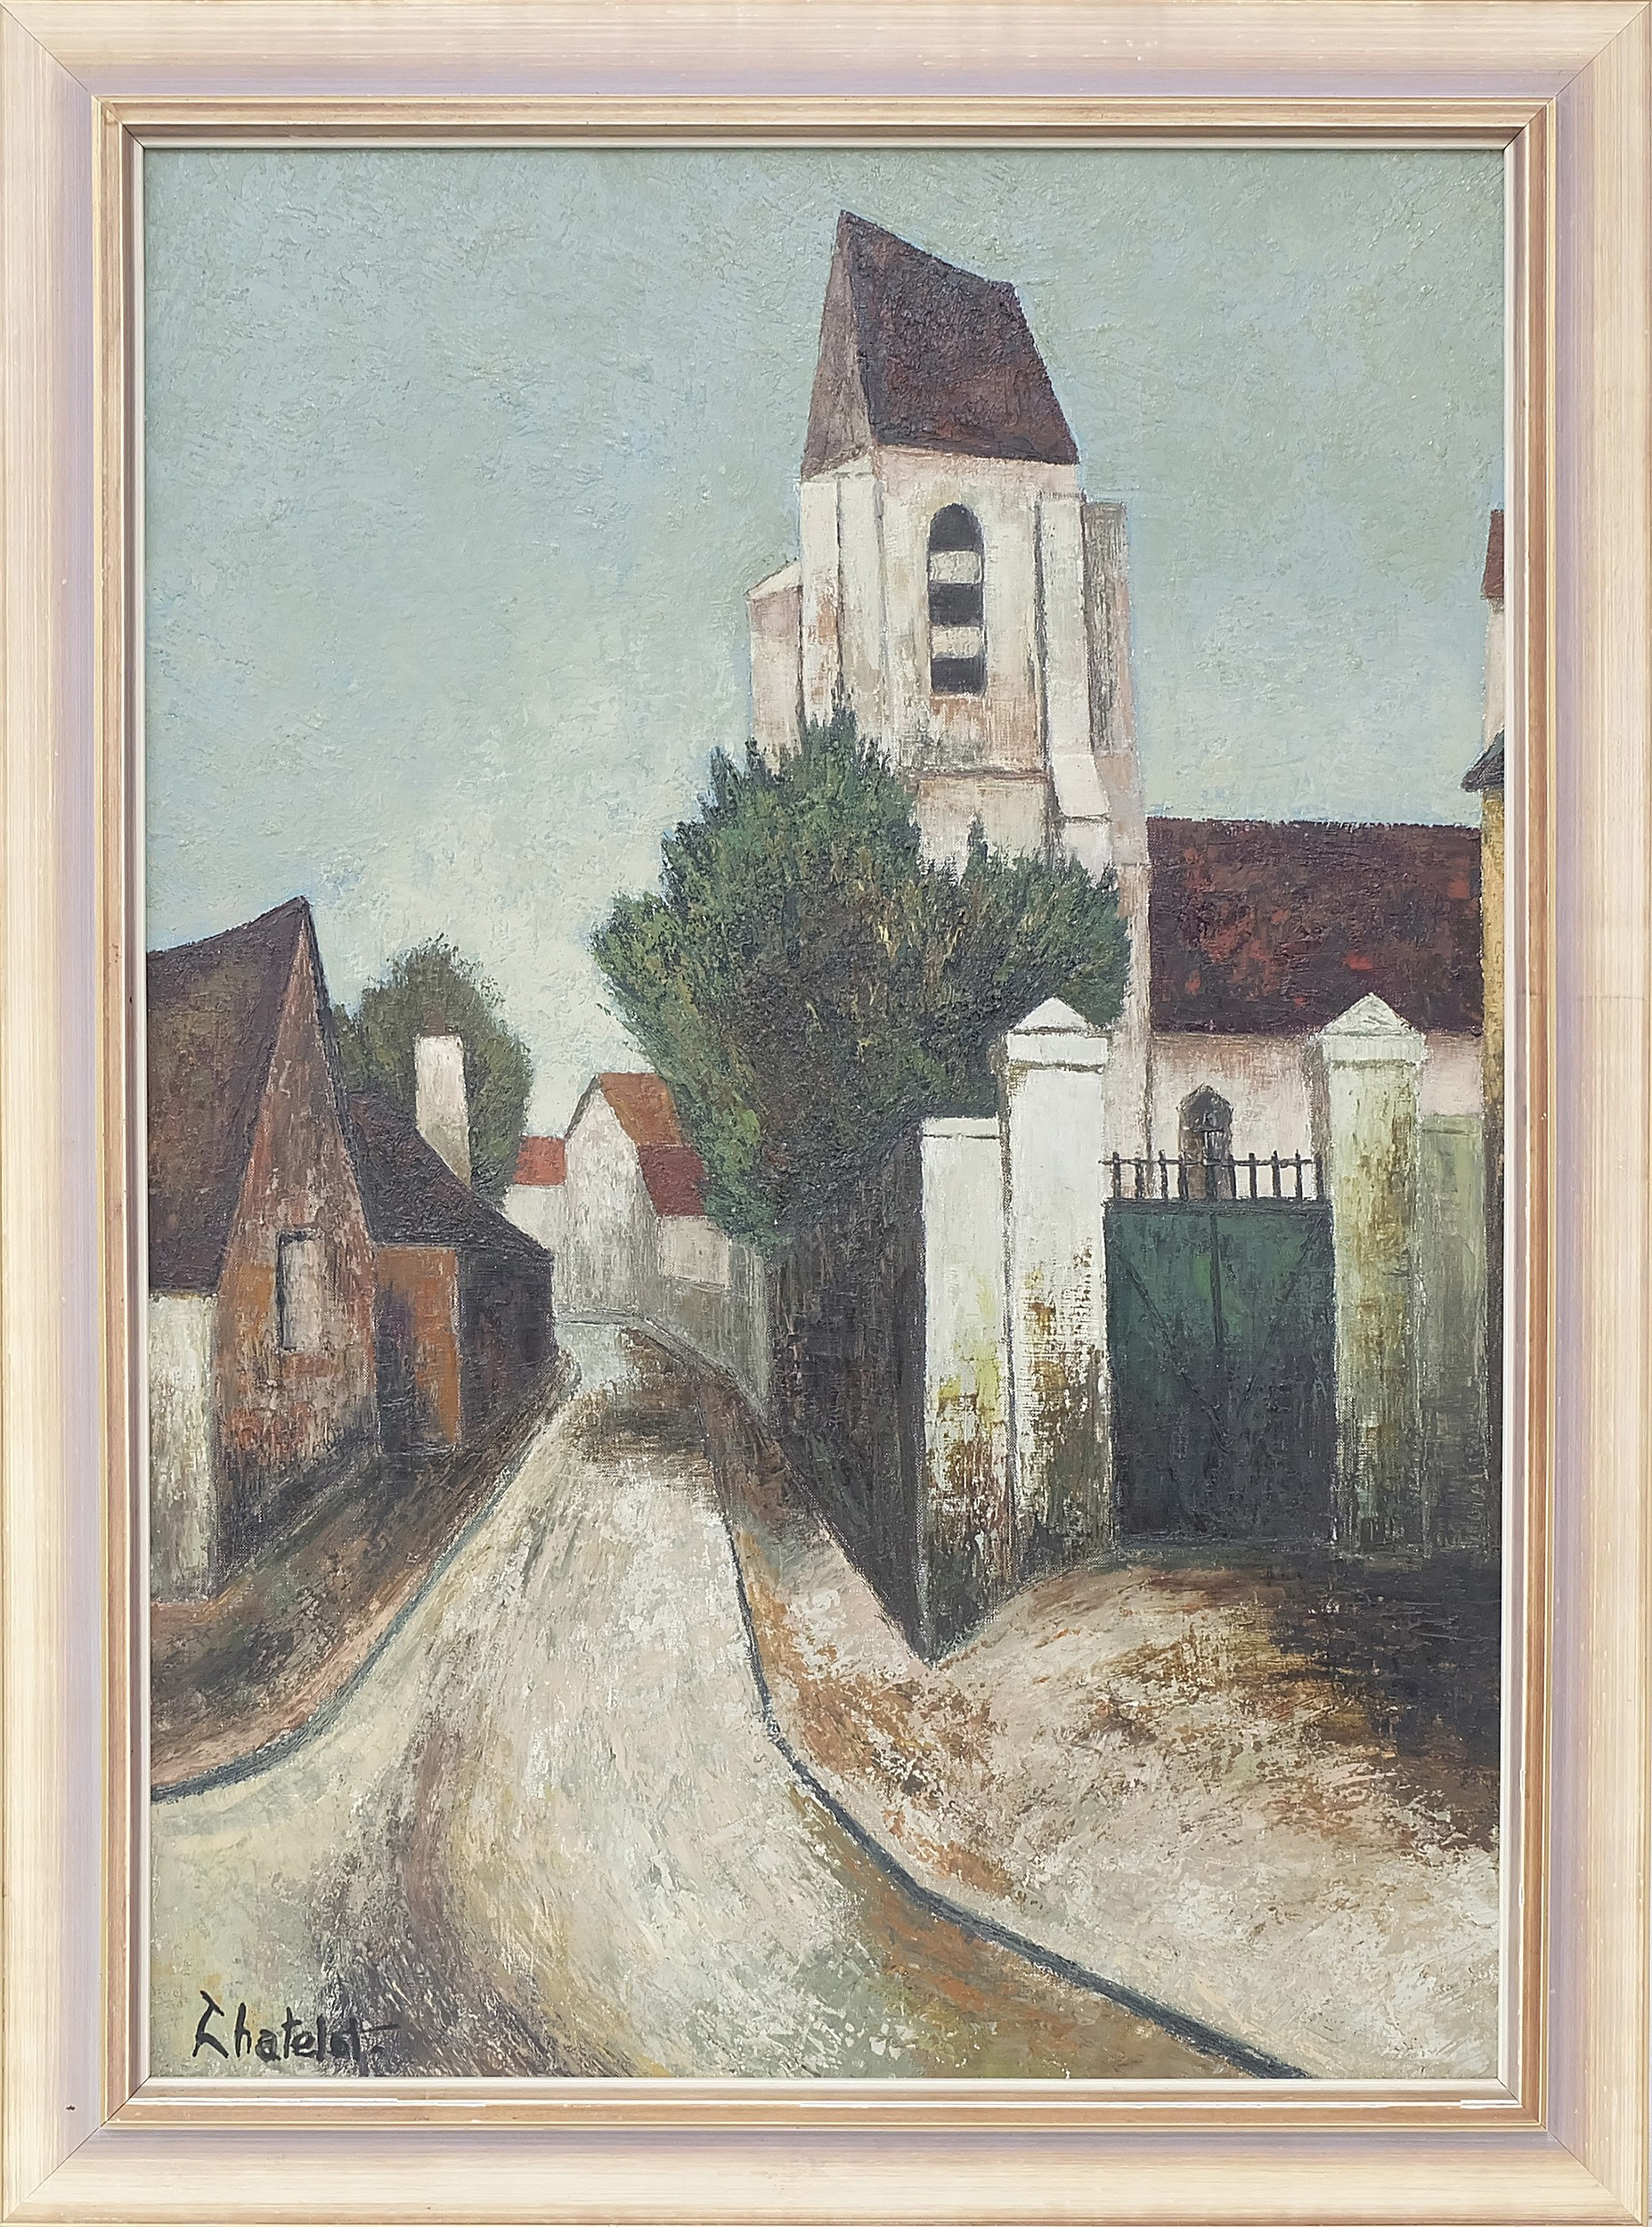 'Ronald W. Chatelot (1922-) Le Presbytere Oil on Canvas'